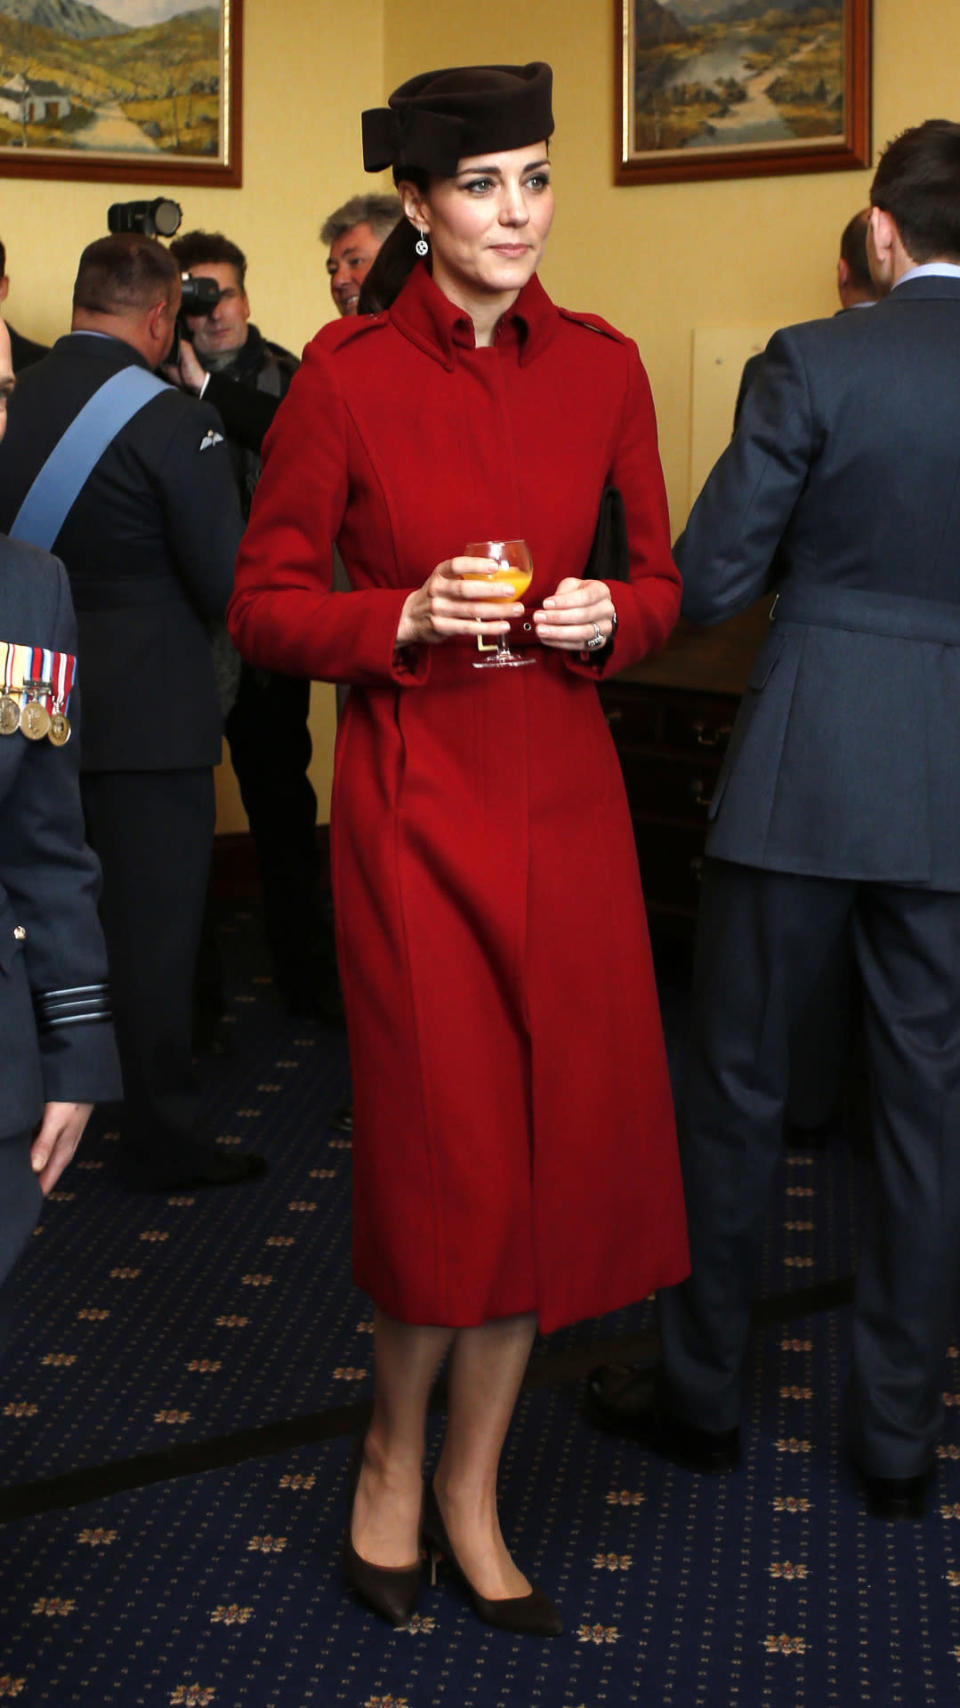 <p>Kate's RAF trip to Wales featured a fitted red coat by favoured retailer L.K. Bennett and a chic black hat designed by Lock & Co Hatters.</p><p><i>[Photo: PA]</i></p>